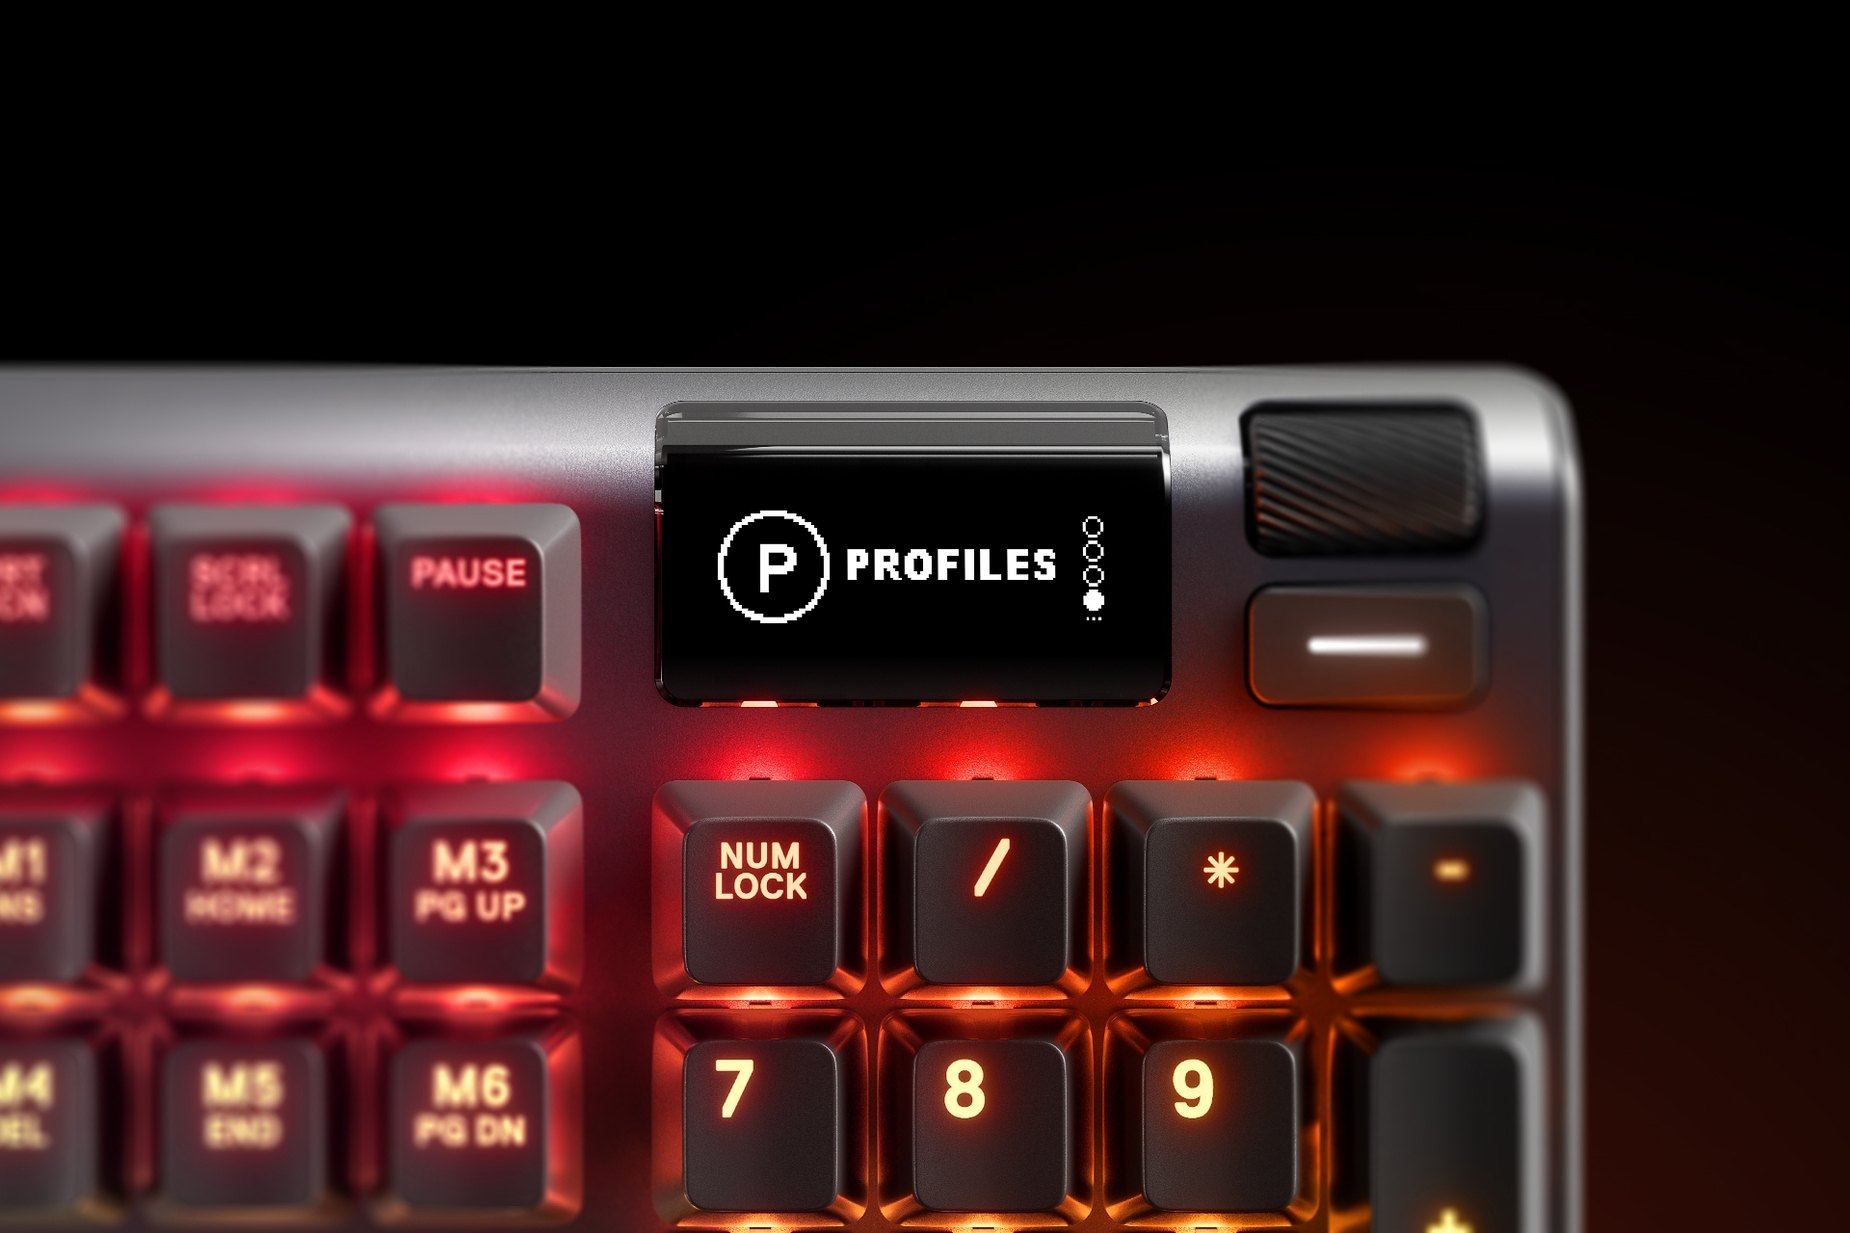 Zoomed in view of the multimedia and settings controls/volume roller on the UK English - APEX PRO gaming keyboard